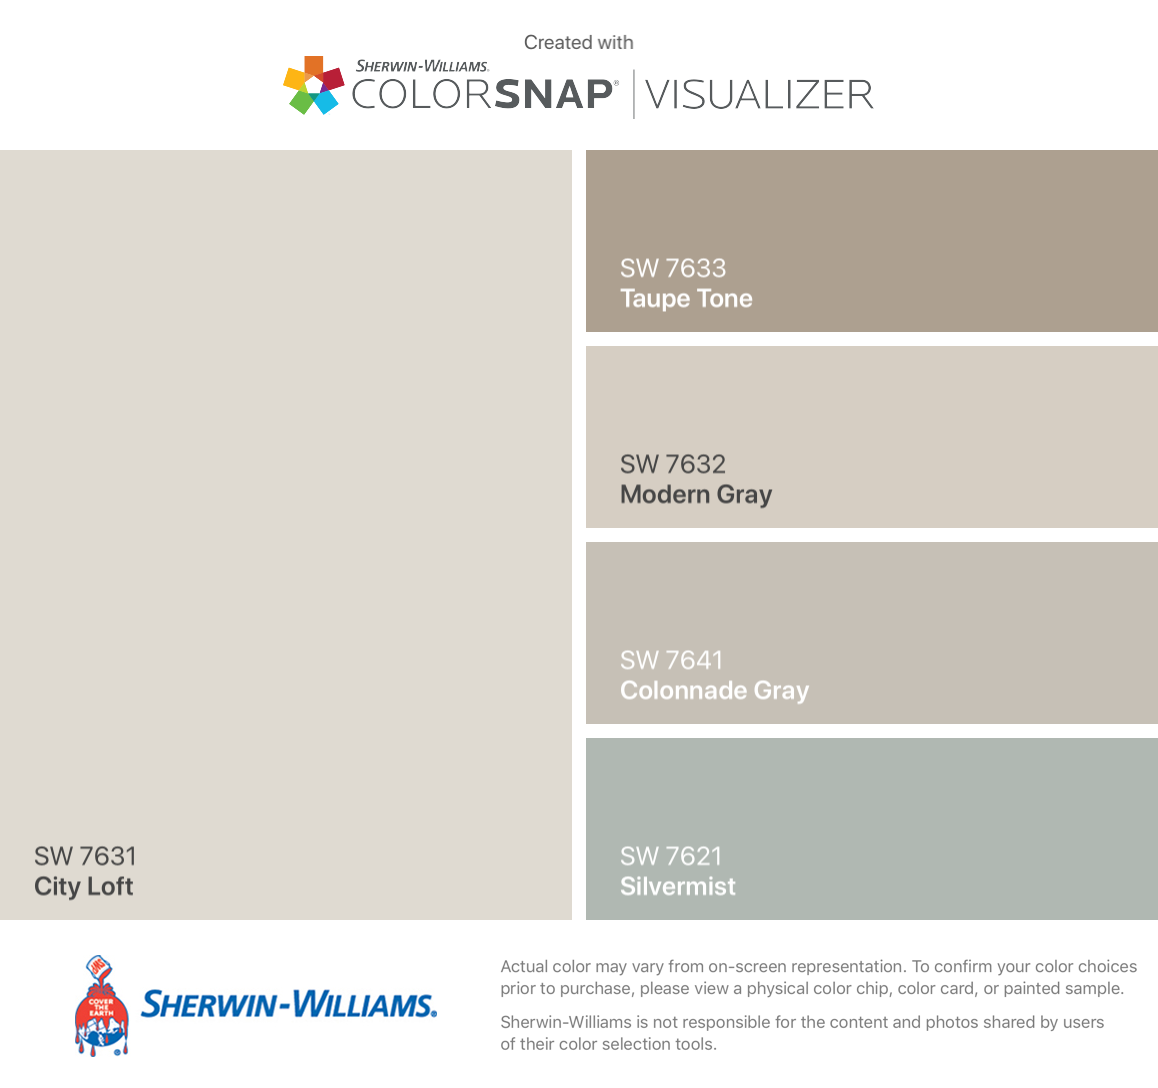 I found these colors with ColorSnap® Visualizer for iPhone by Sherwin-Williams: City Loft (SW 7631), Taupe Tone (SW 7633), Modern Gray (SW 7632), Colonnade Gray (SW 7641), Silvermist (SW 7621). #cityloftsherwinwilliams